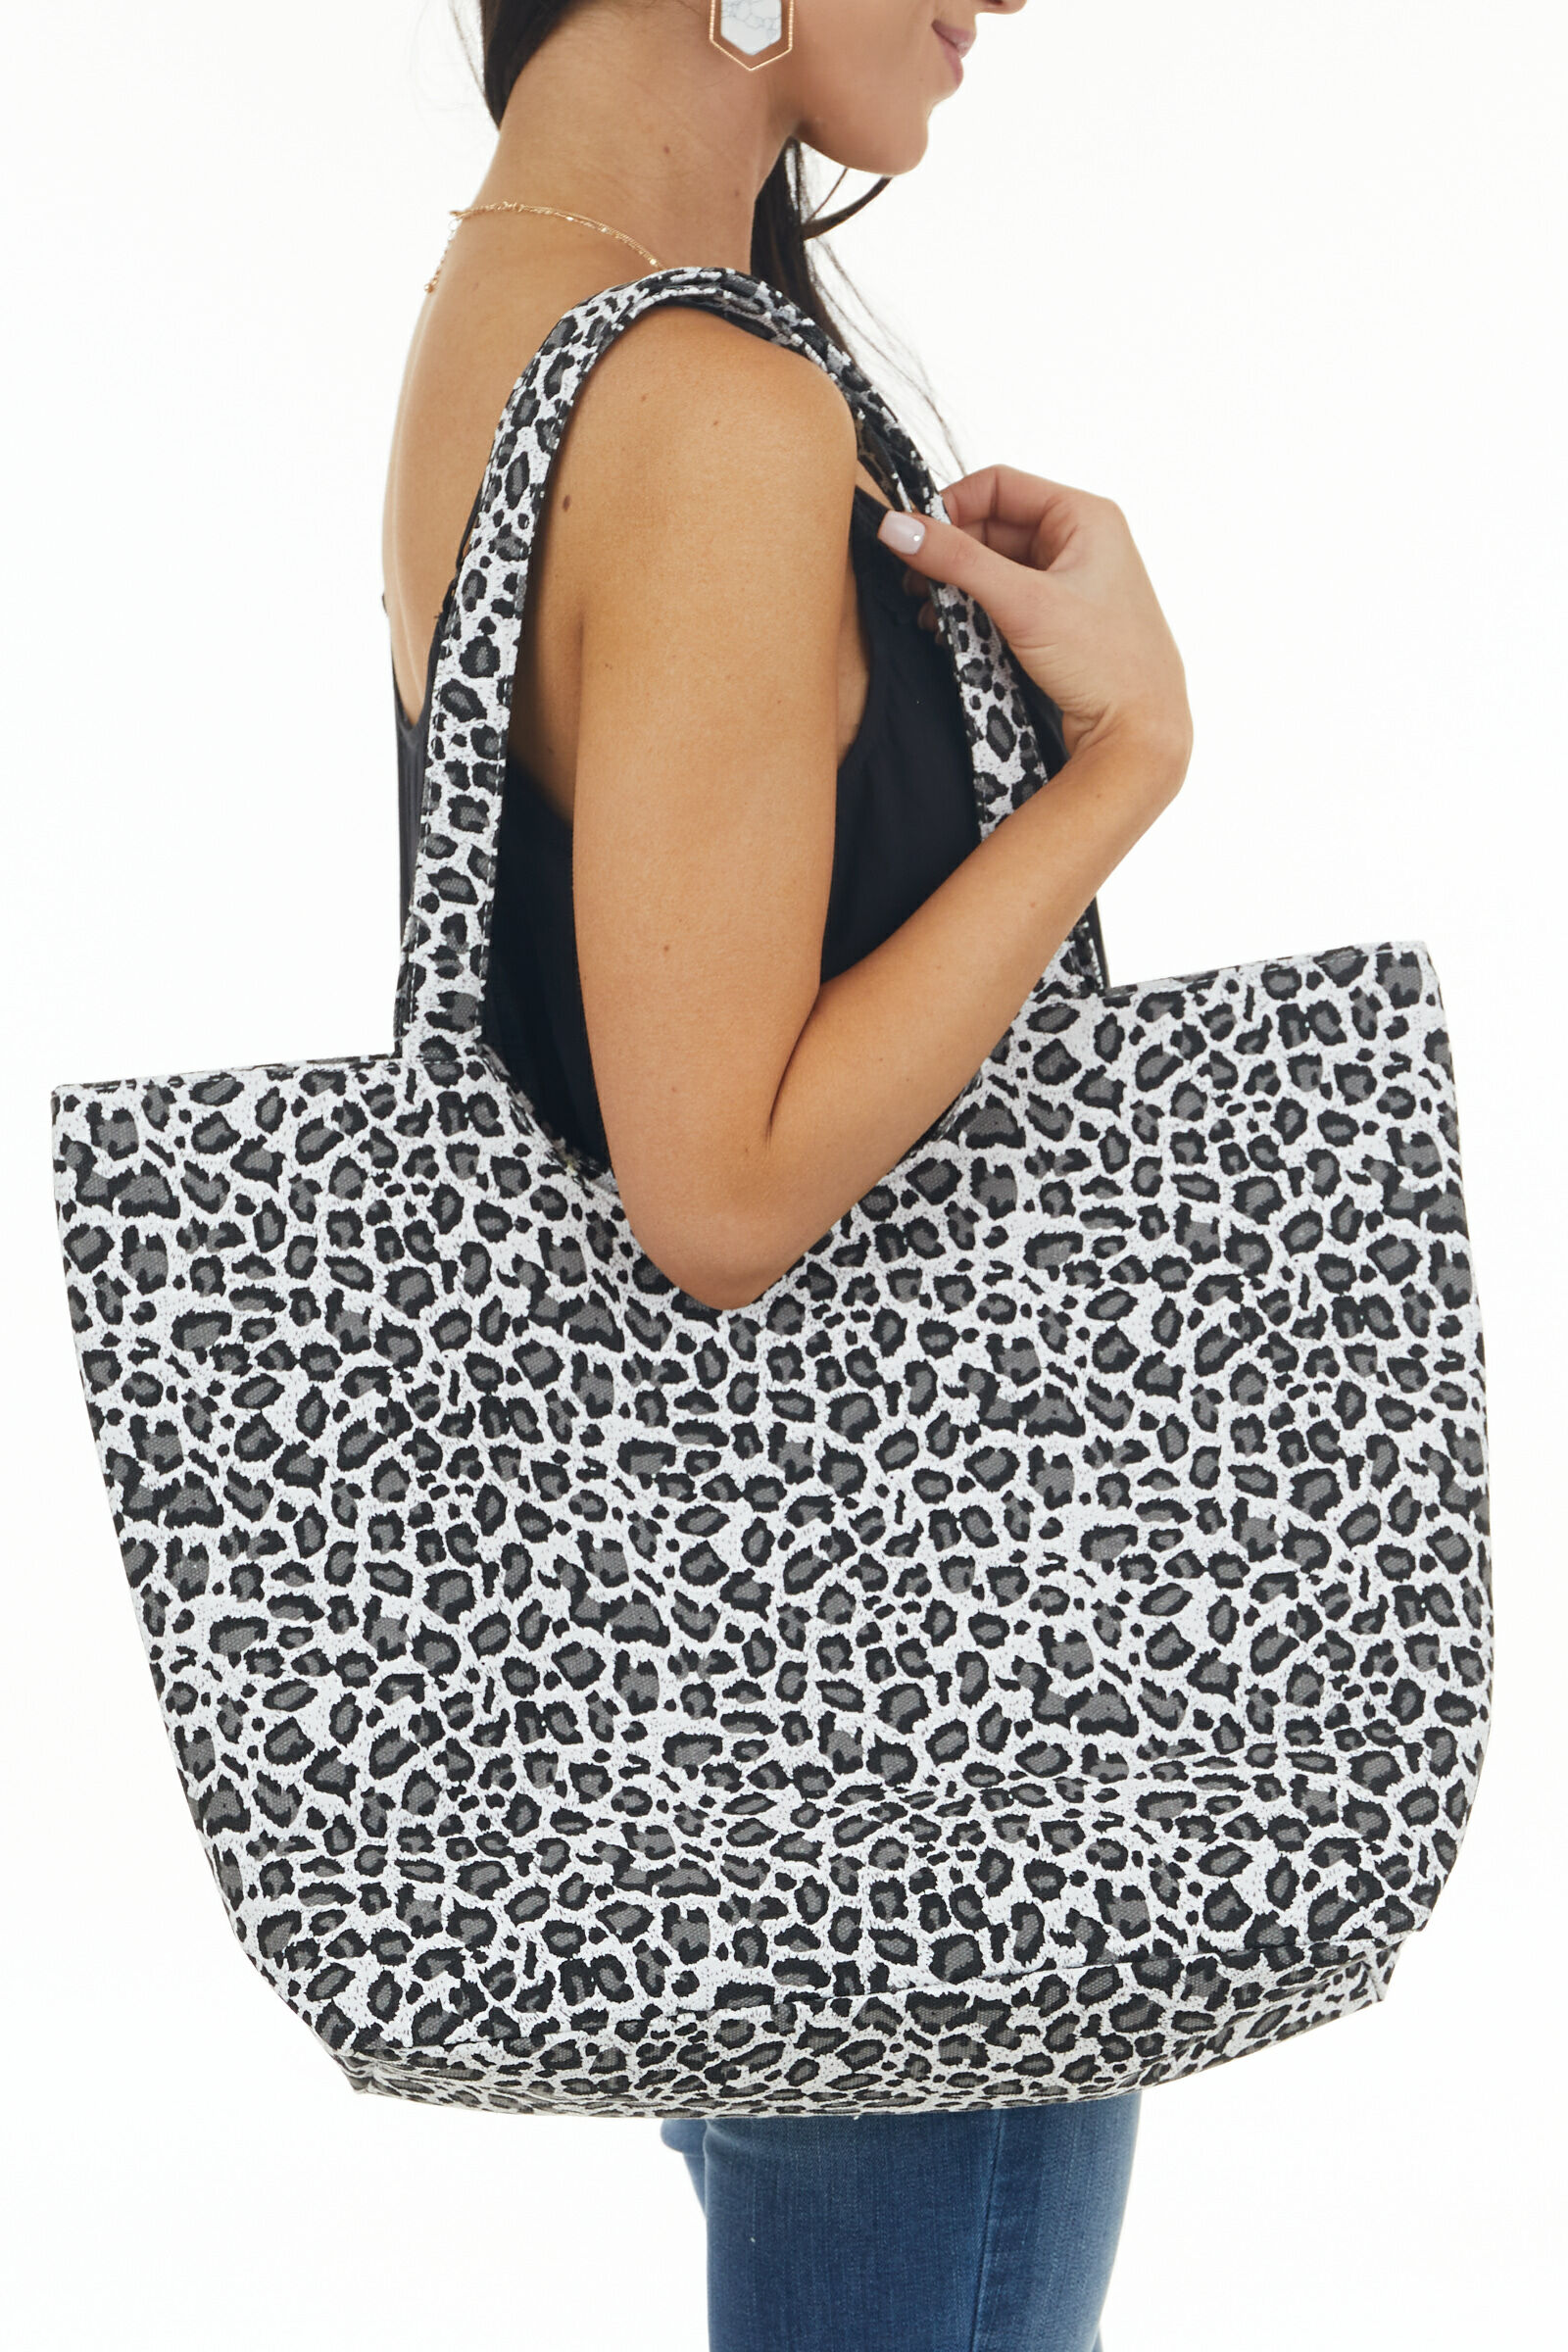 White and Steel Leopard Print Tote Bag with Zipper Closure